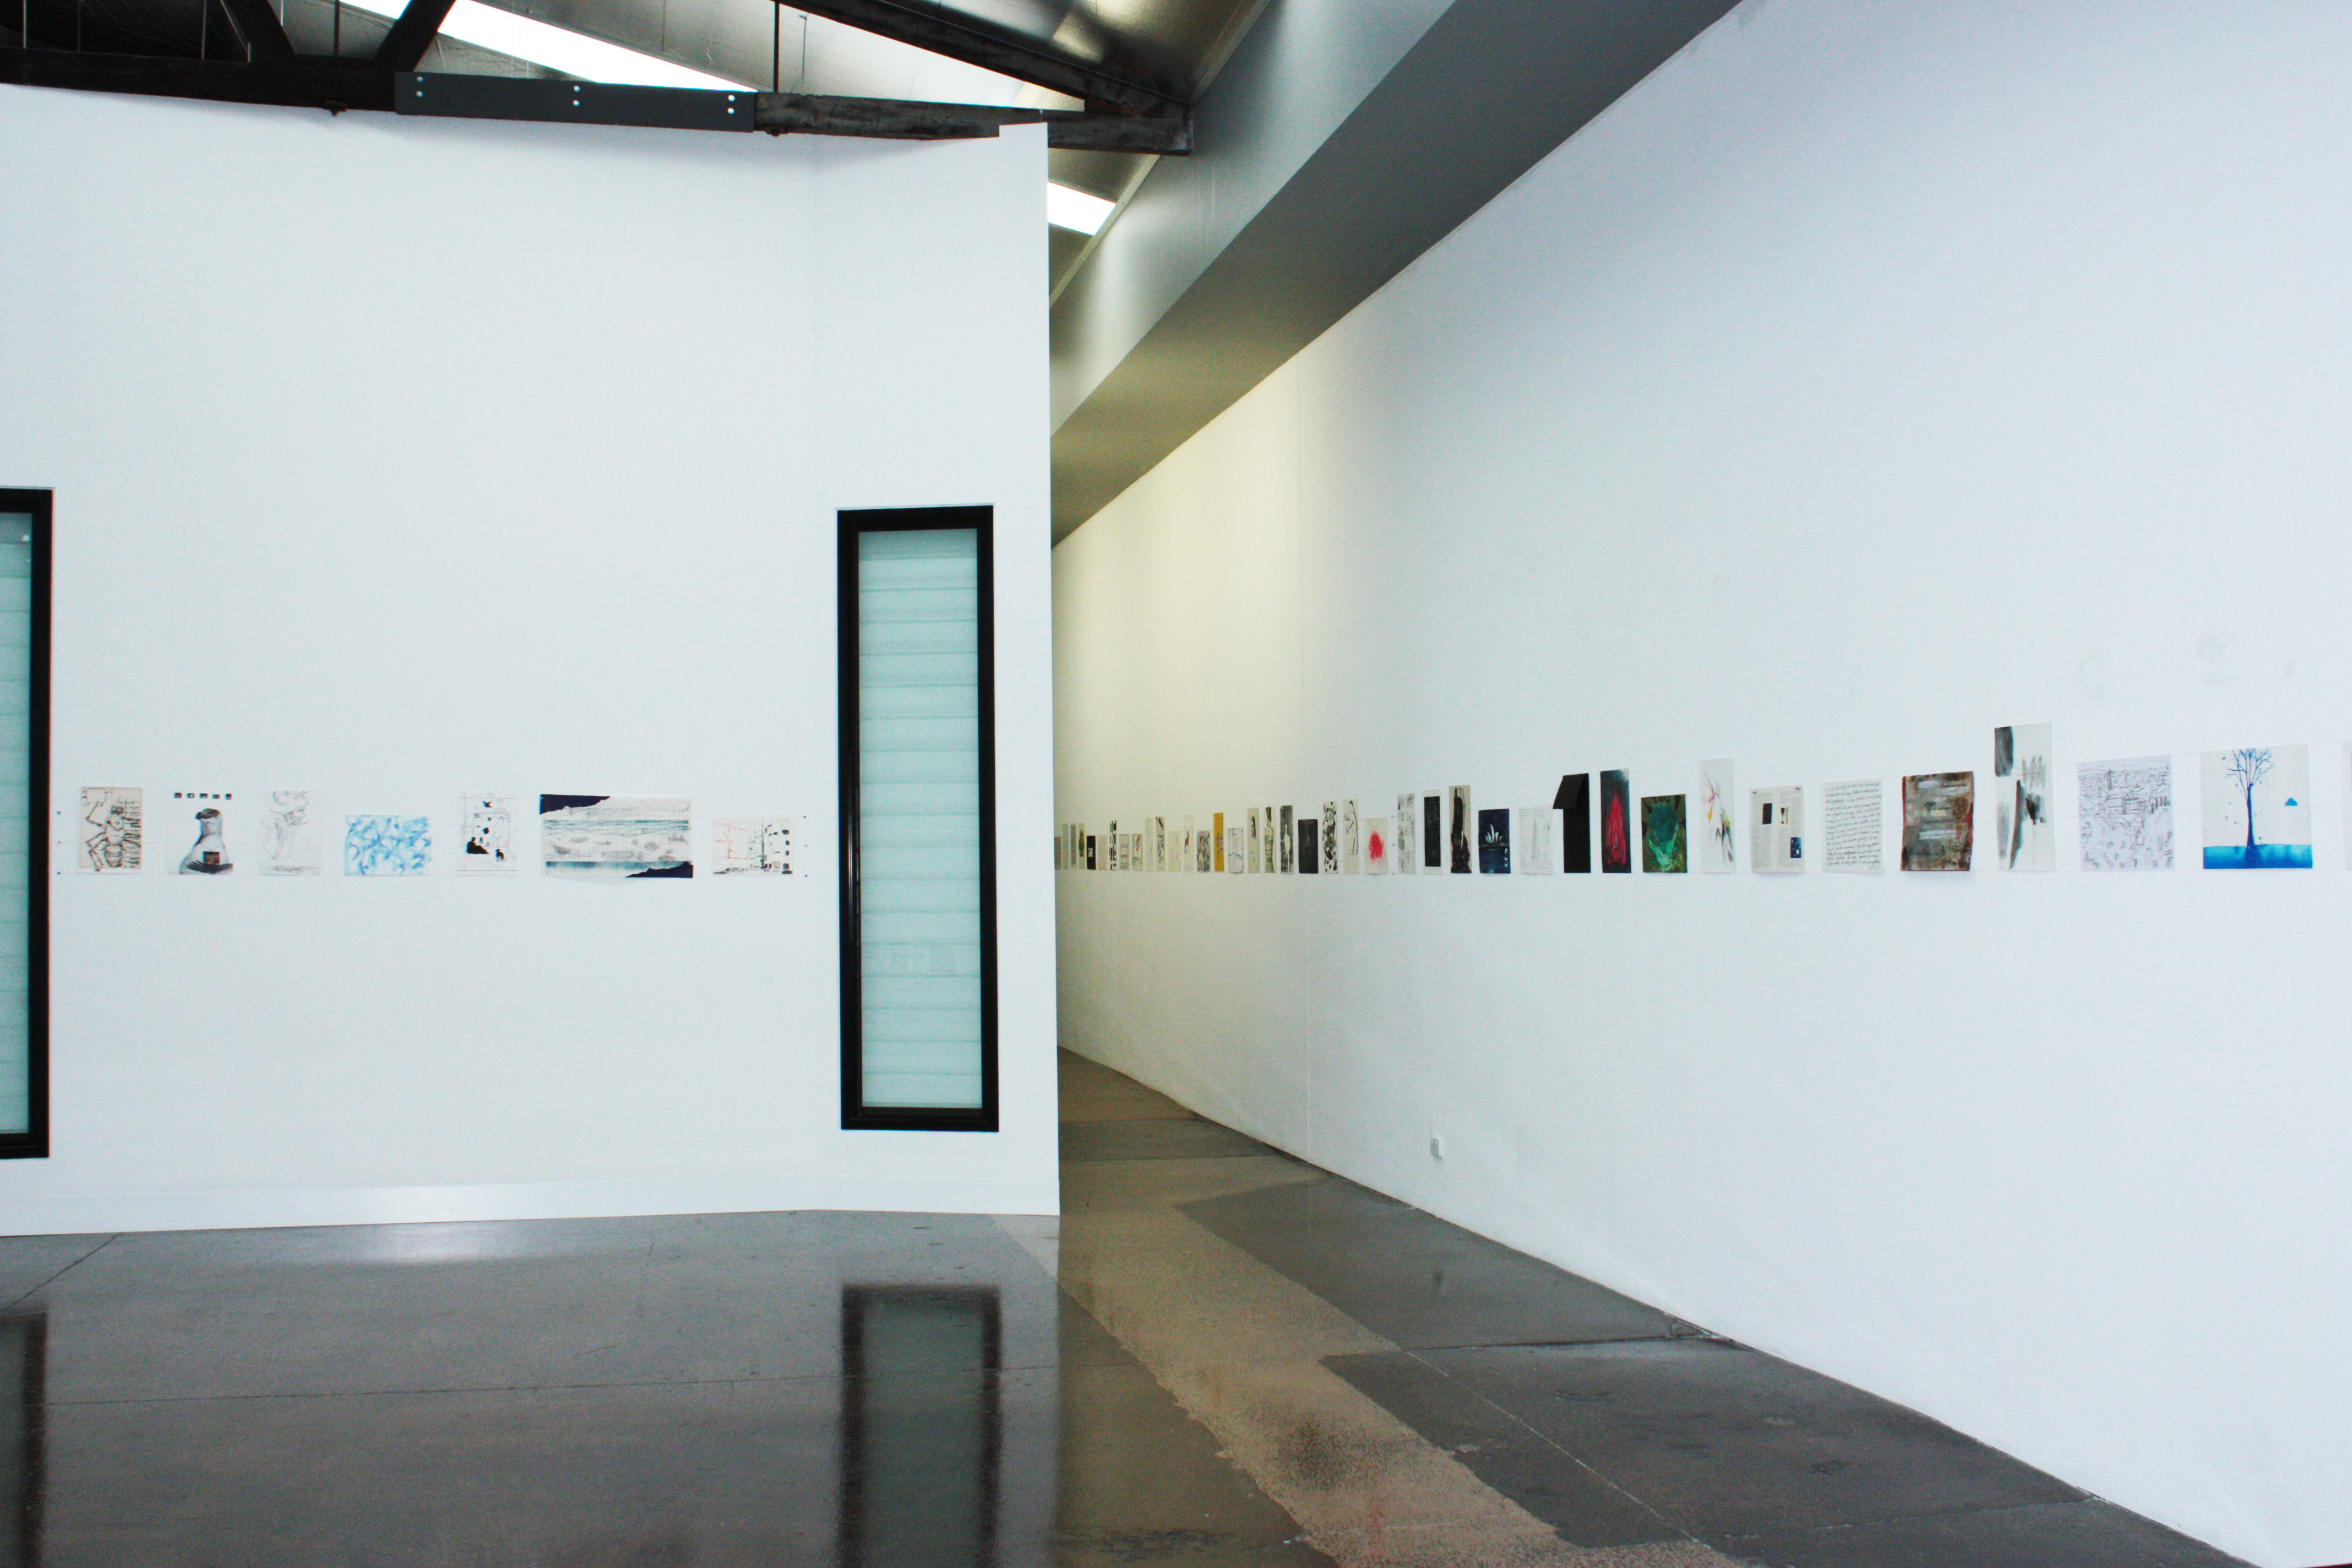 Contemporary Australian Drawing#3, Gallery Langford120, melbourne.jpg